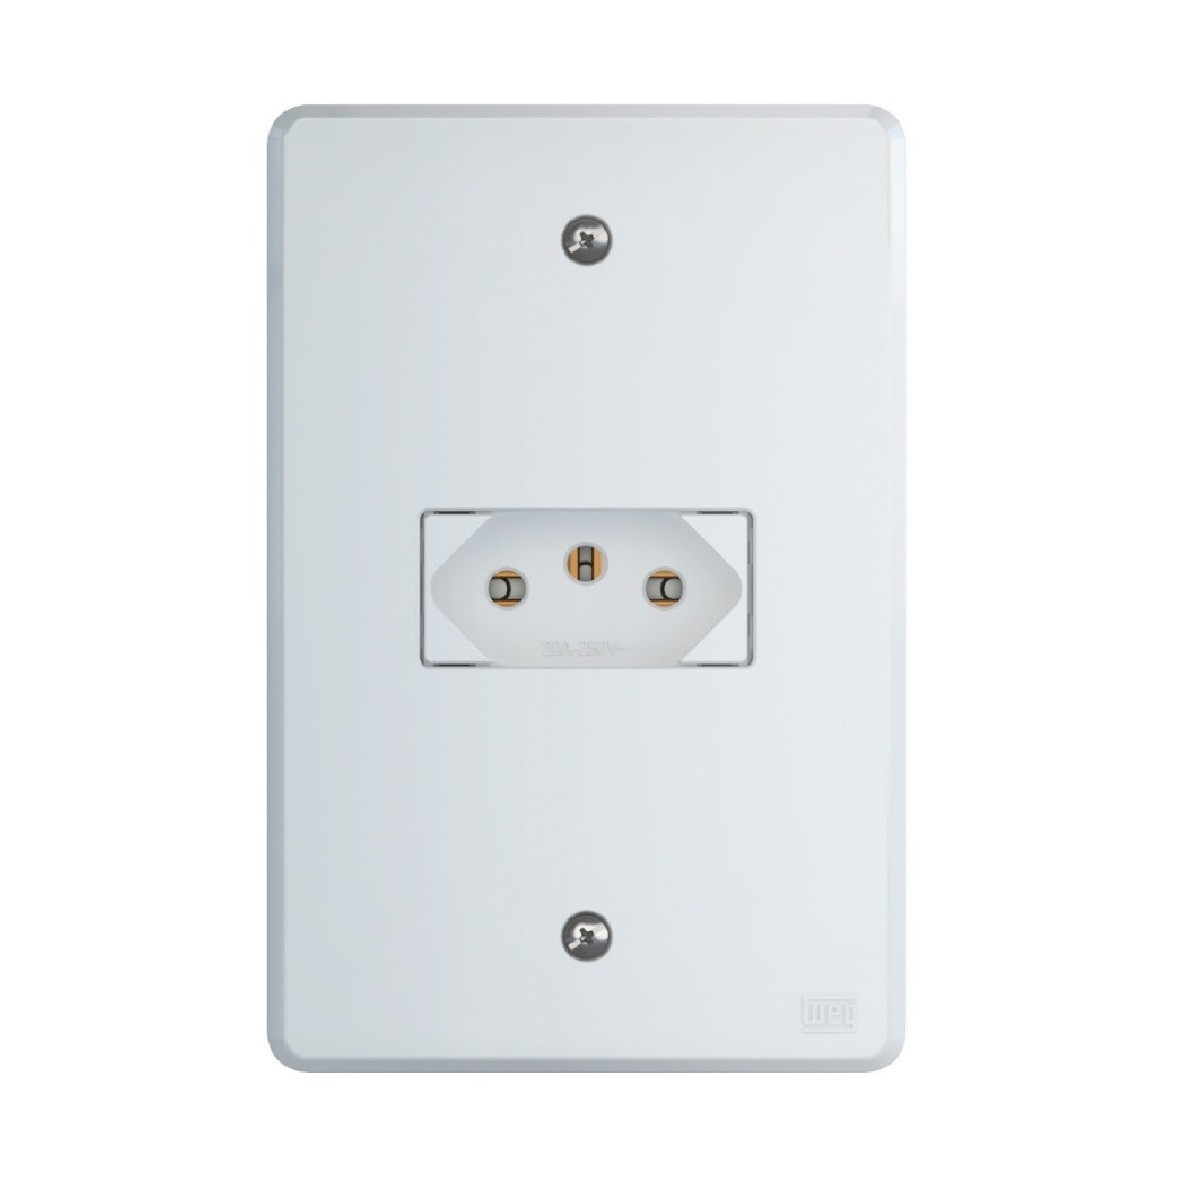 TOMADA WEG EQUILLE SIMPLES 2P+T 20A 250V